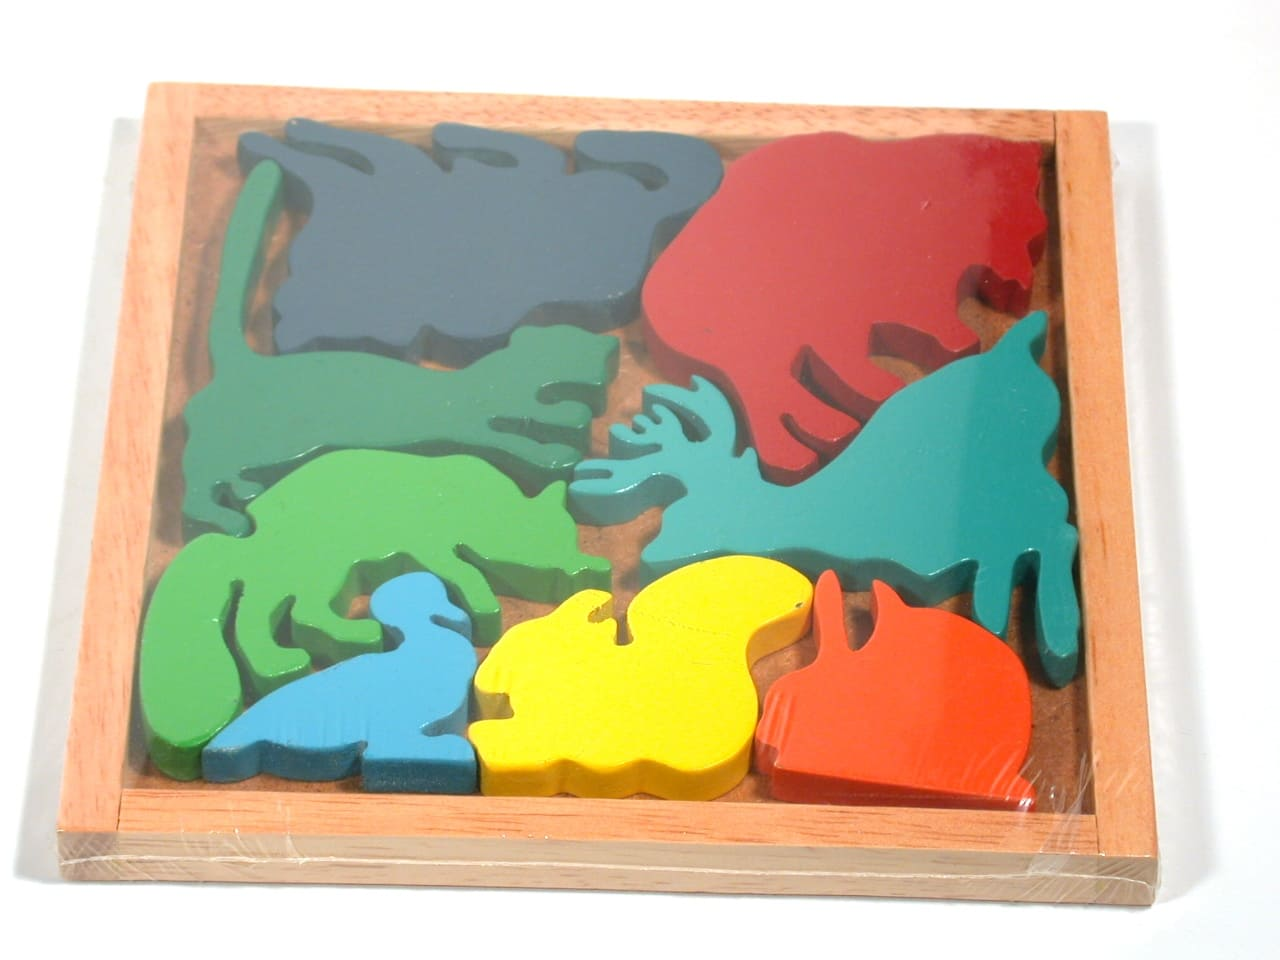 Puzzle Holz Geduldspiel Puzzle Tiere Holz